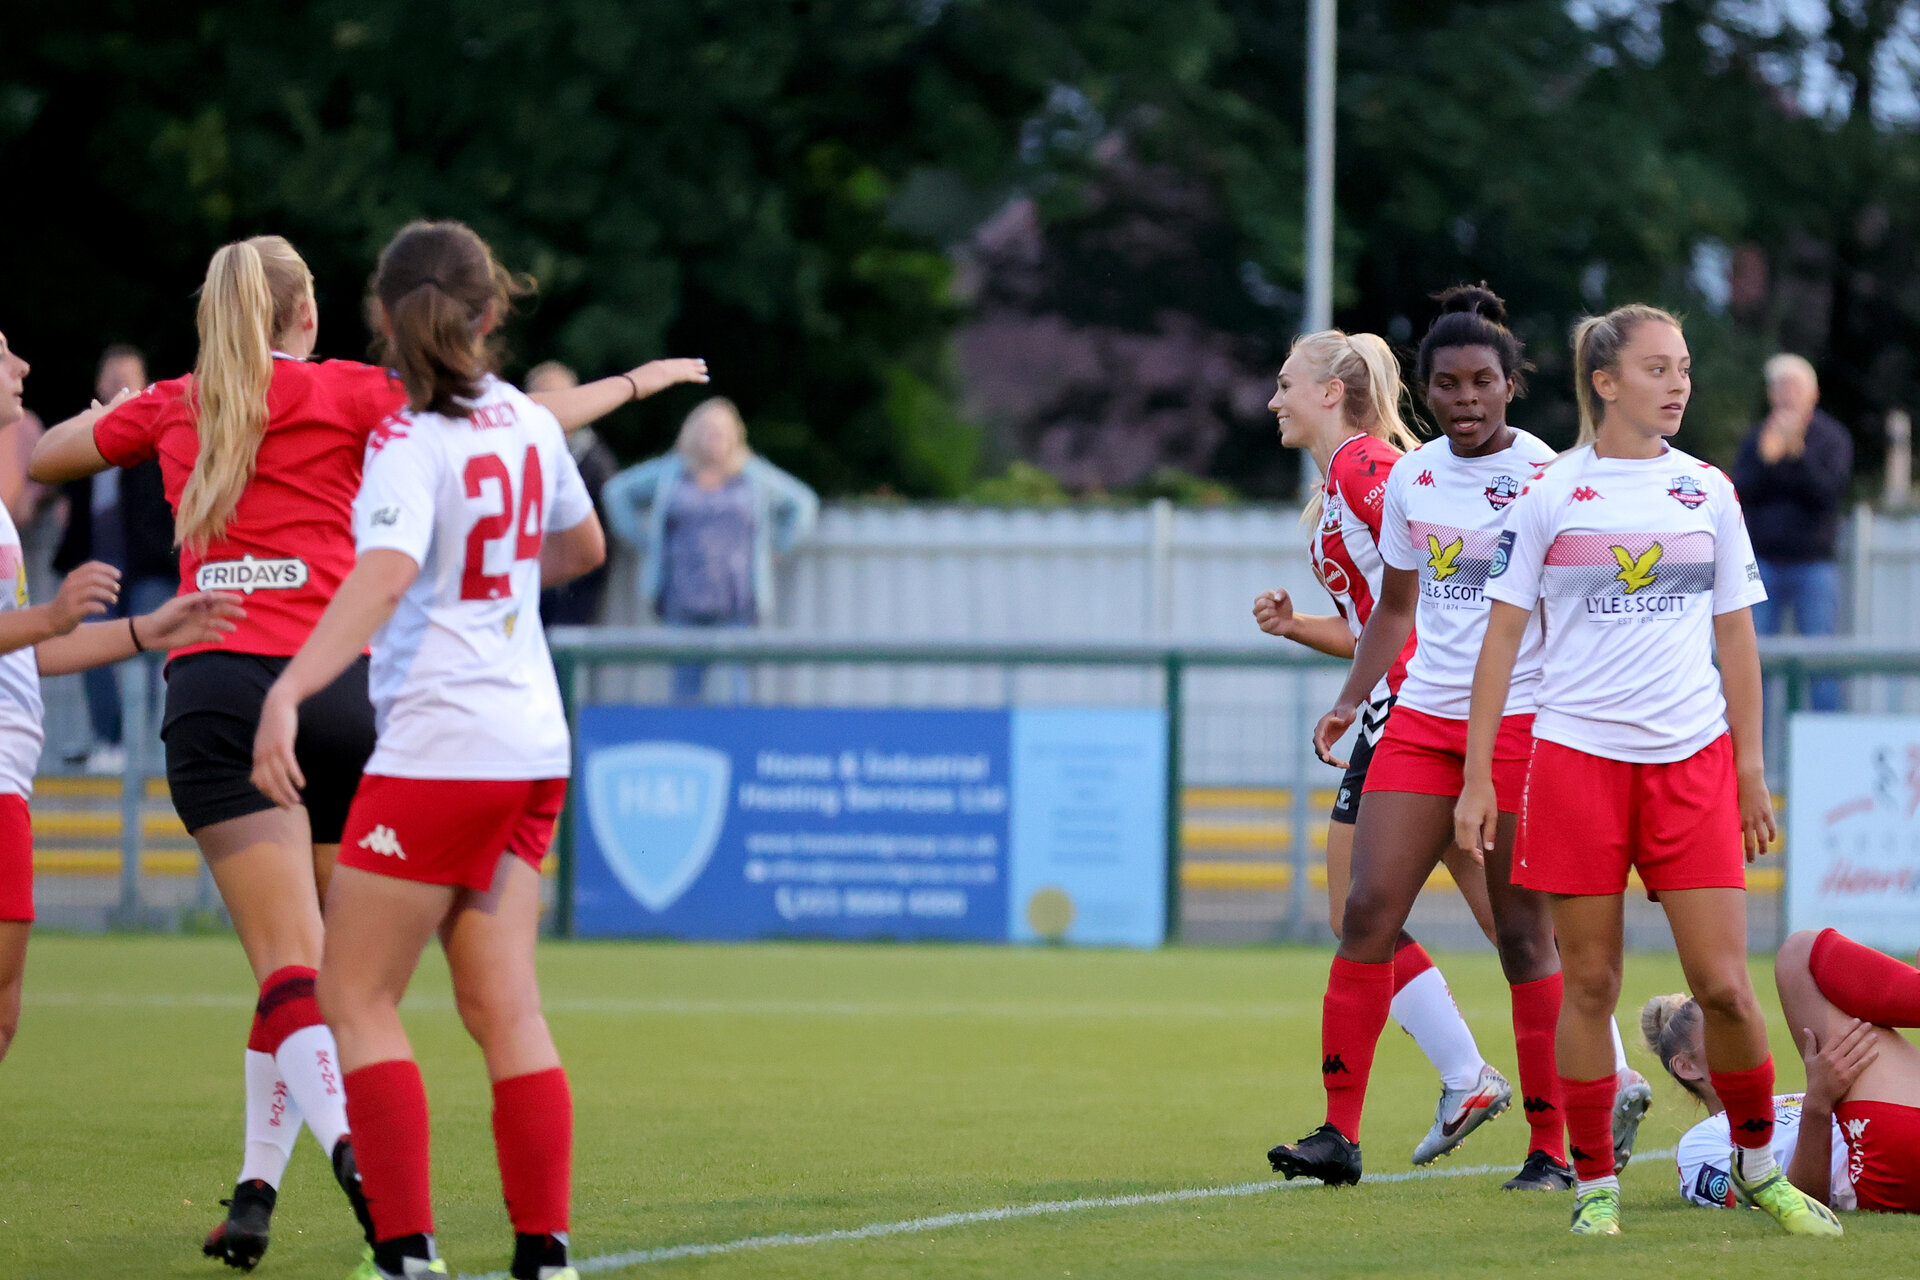 SOUTHAMPTON, ENGLAND - JULY 29: Rosie Parnell of Southampton goal celebration during pre season friendly match between Southampton Women's Team and Lewes FC at Snows Stadium on July 29, 2021 in Southampton, England. (Photo by Isabelle Field/Southampton FC via Getty Images)